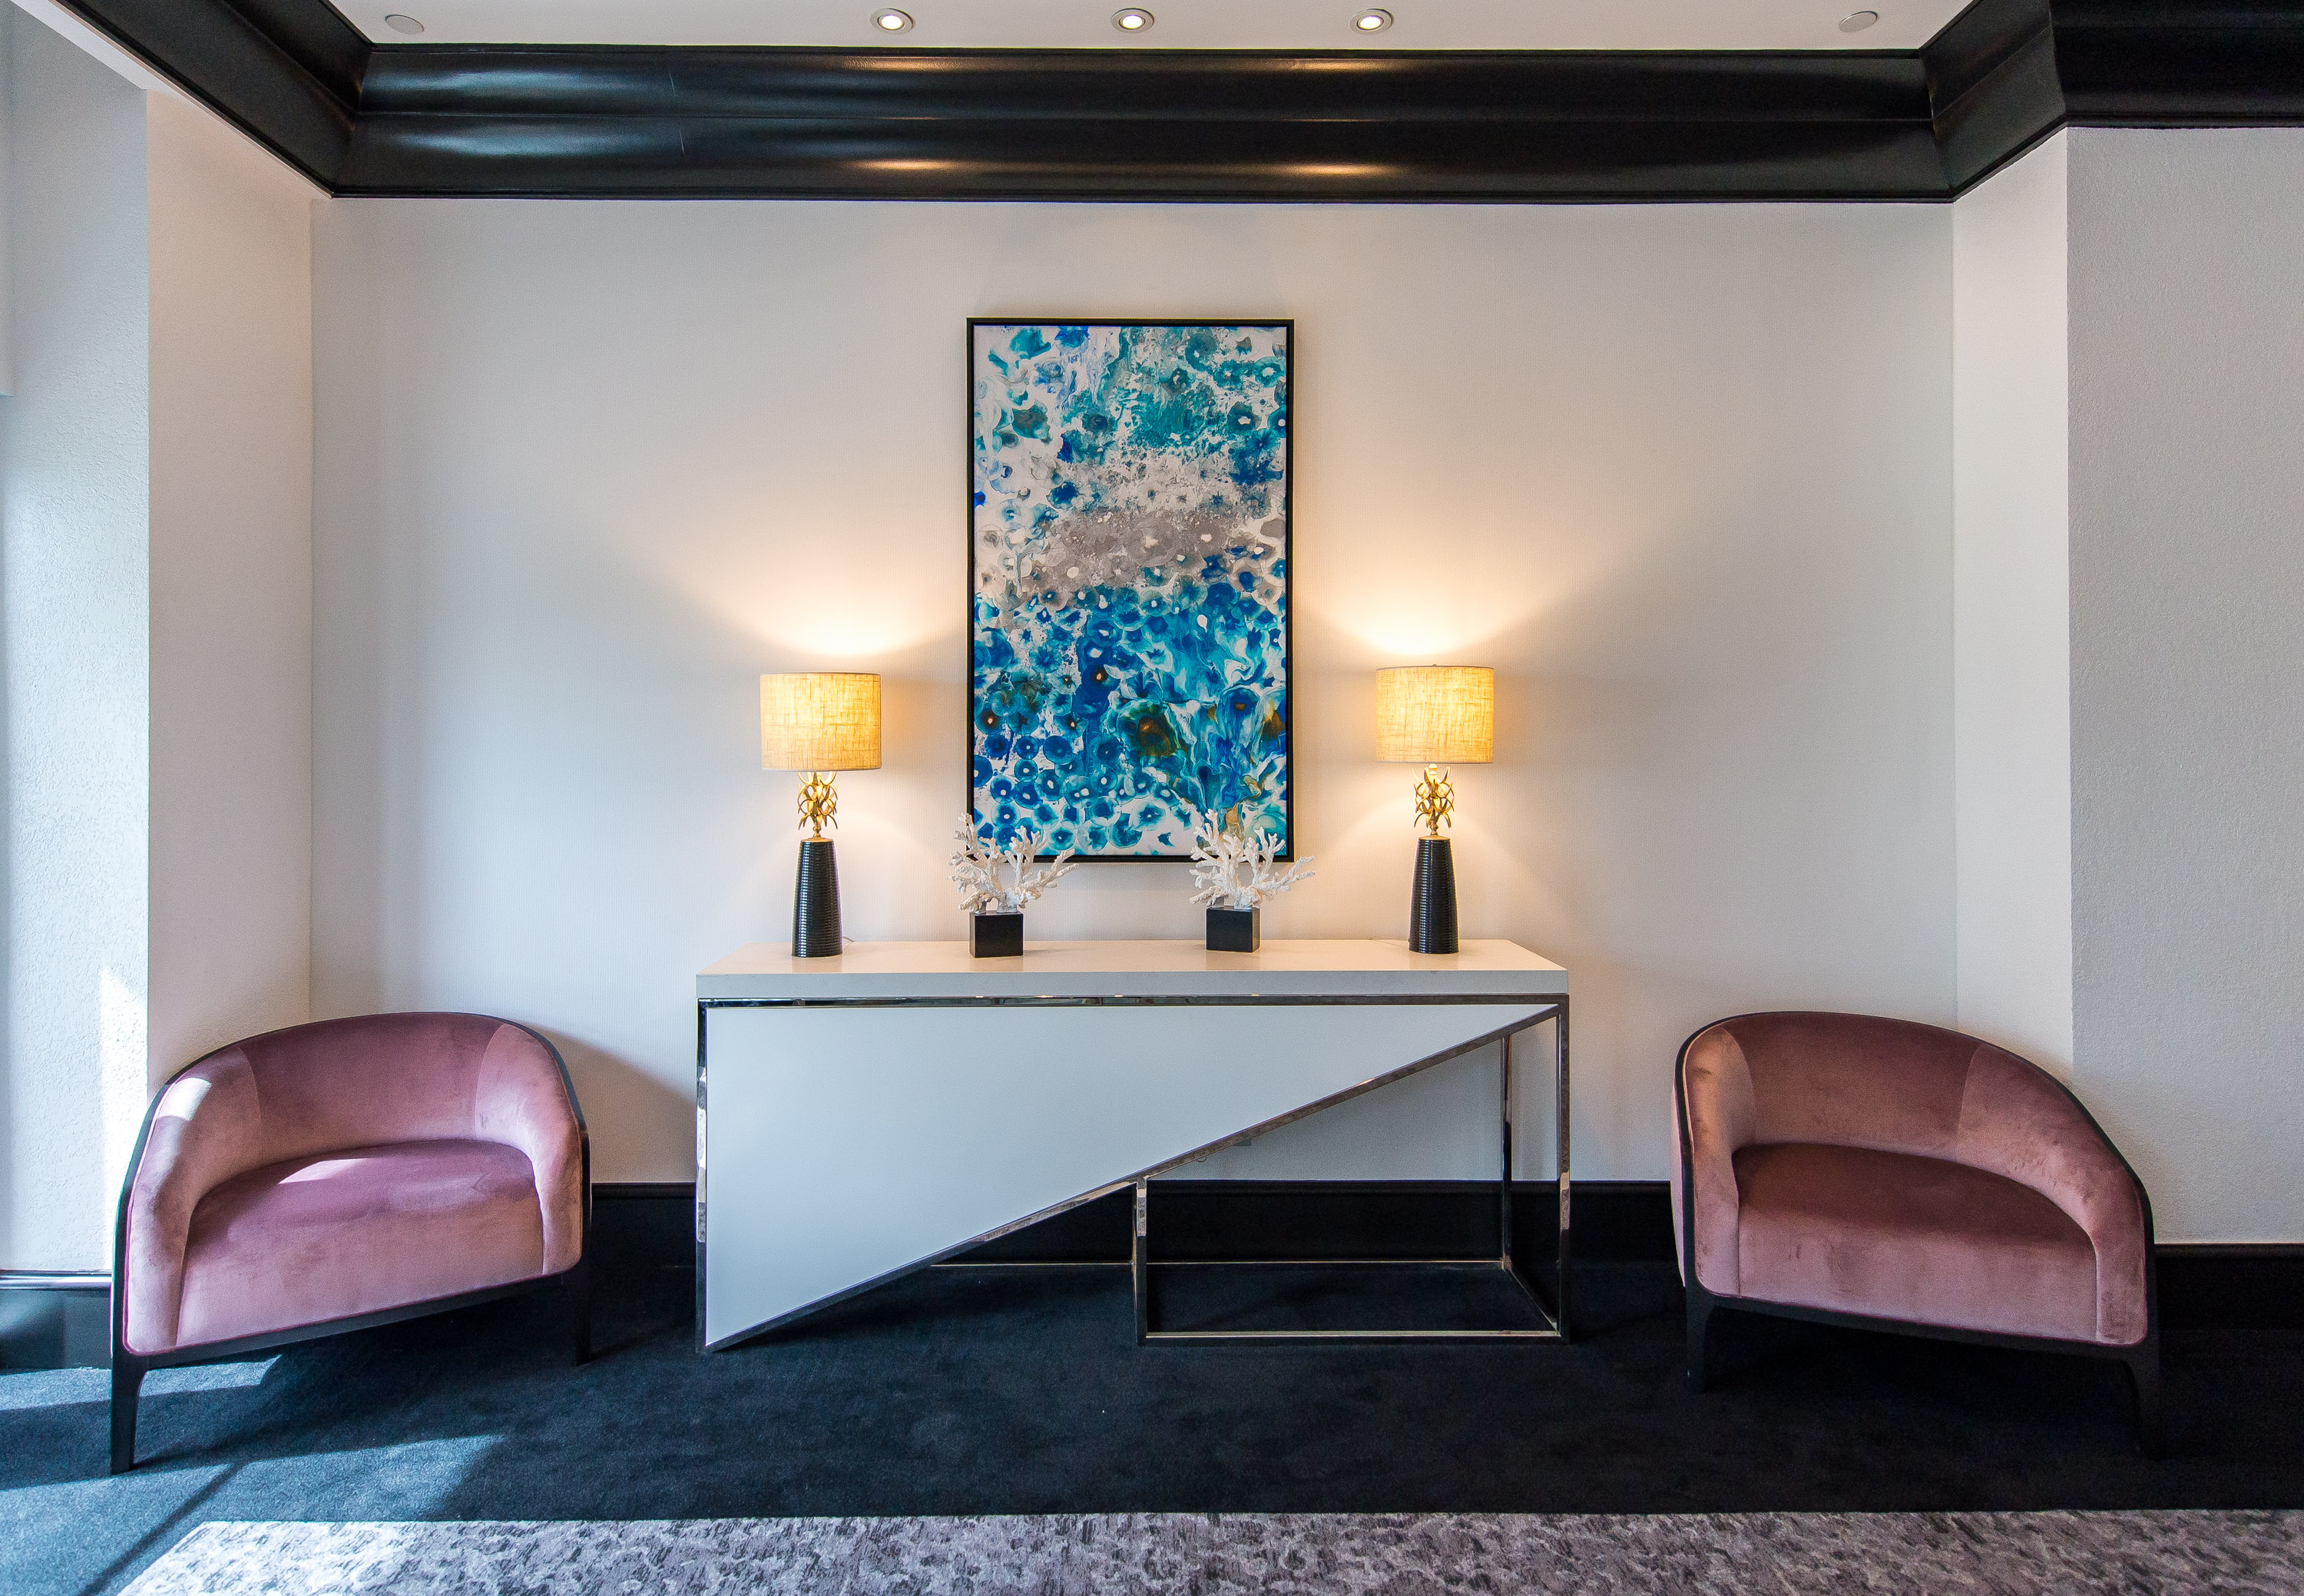 COLLECTION NOTES: AQUATIC SYMMETRY AT LOEWS MIAMI